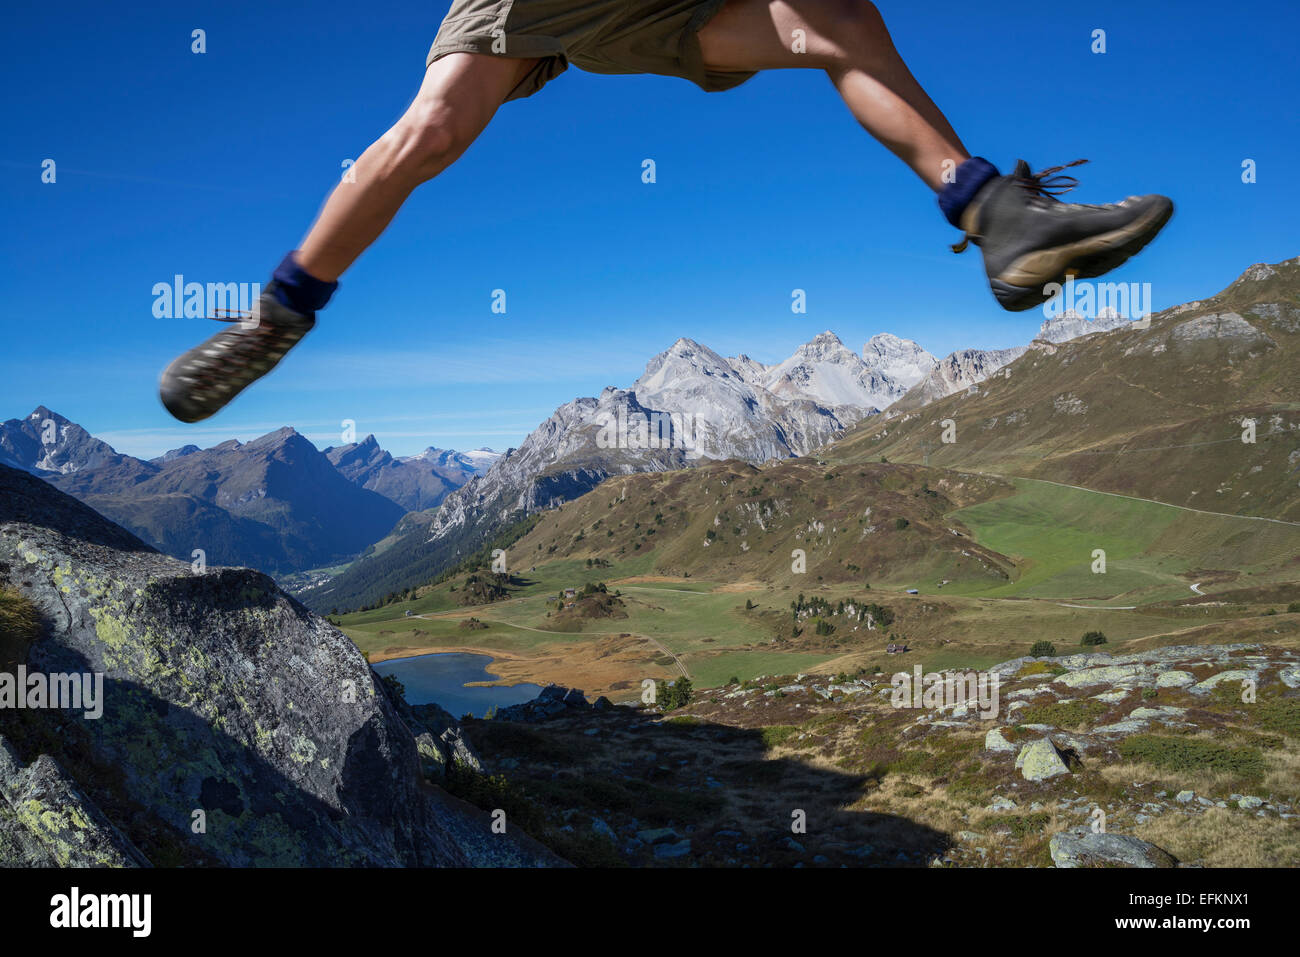 Legs of male hiker jumping over rocks, Lai da Fons, Canton Graubunden, Switzerland - Stock Image